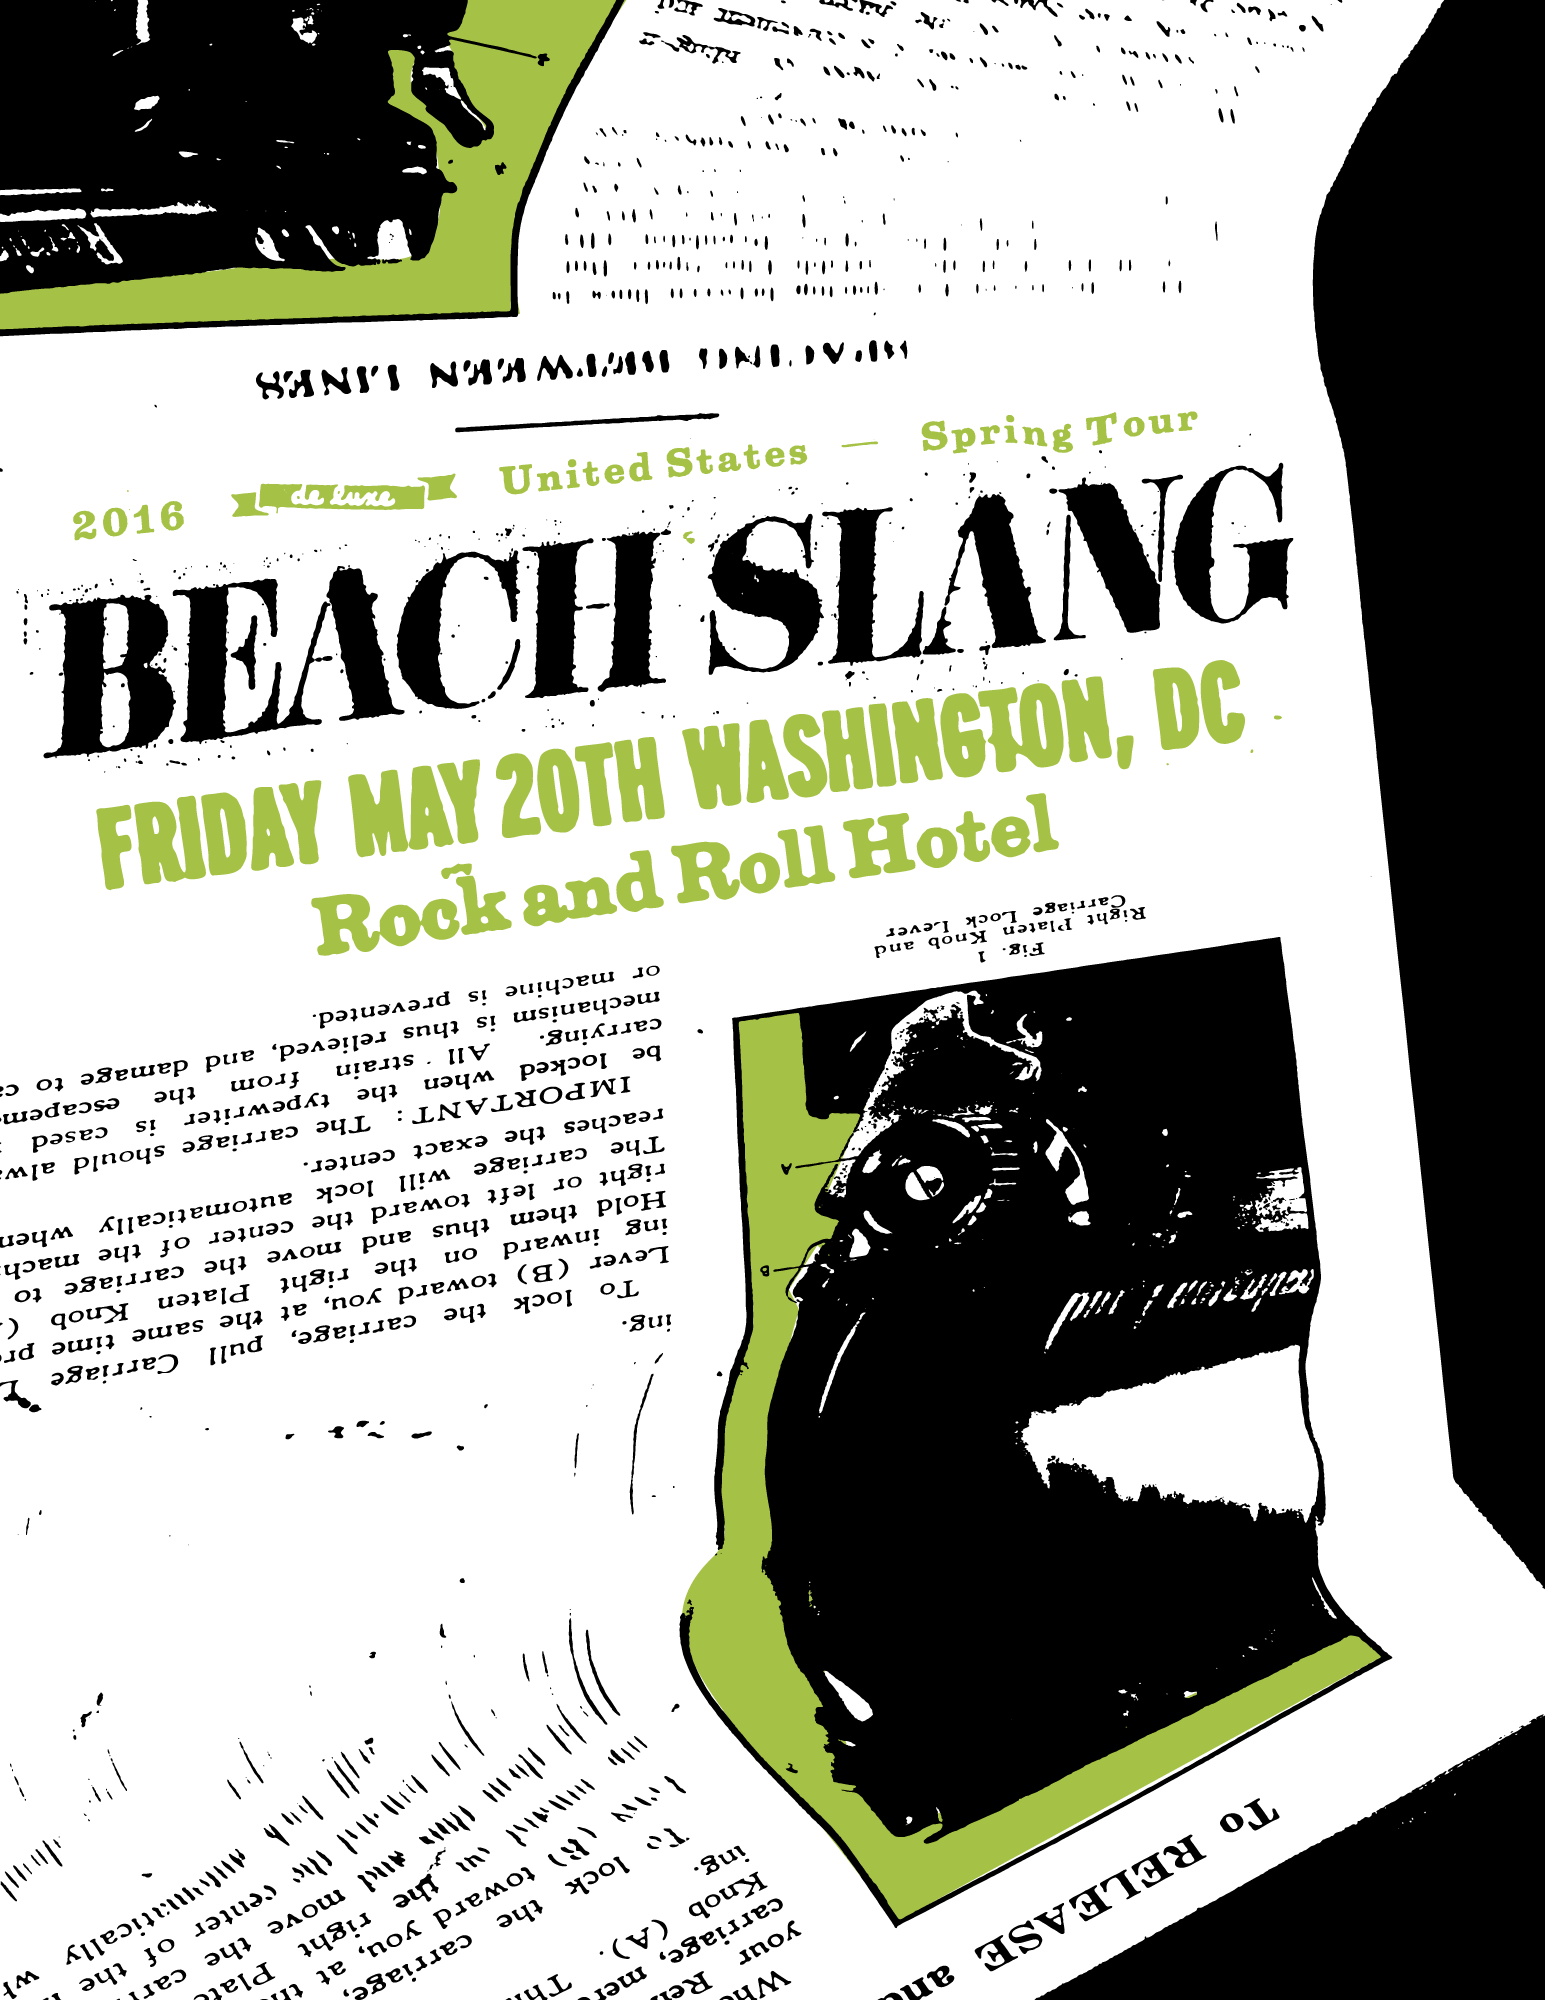 BeachSlang_5-20_WashDC_r1.png